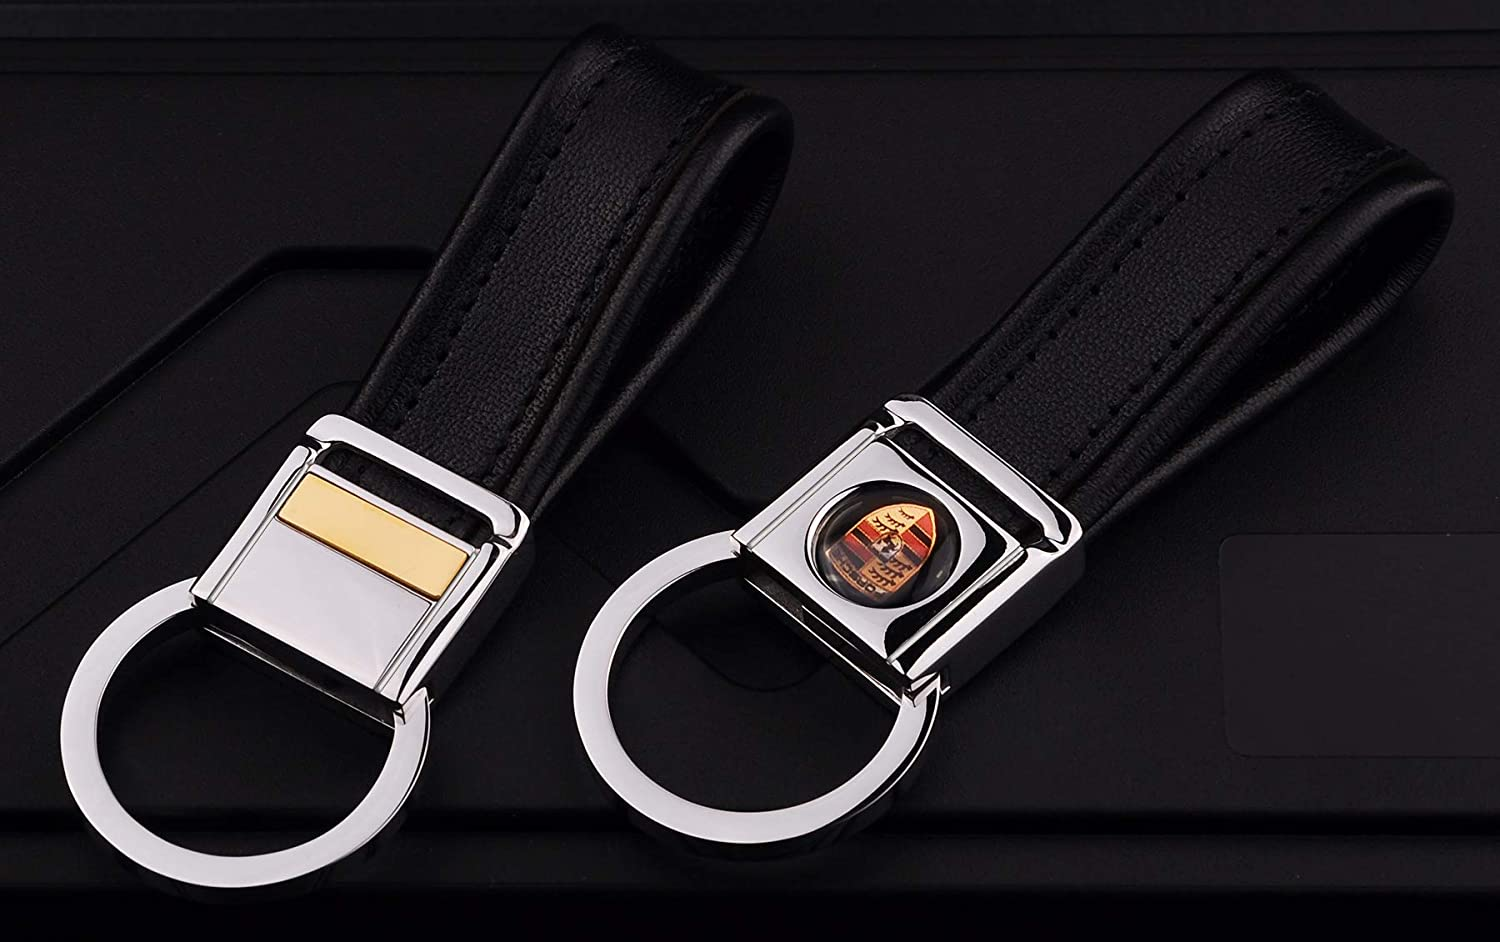 Cadtealir Highlight Stainless steel metal tab lock bucle inlaid with 18k golden chip with full grain nappa leather strap car key chain lanyard clips ring for porsche for men woman accessories